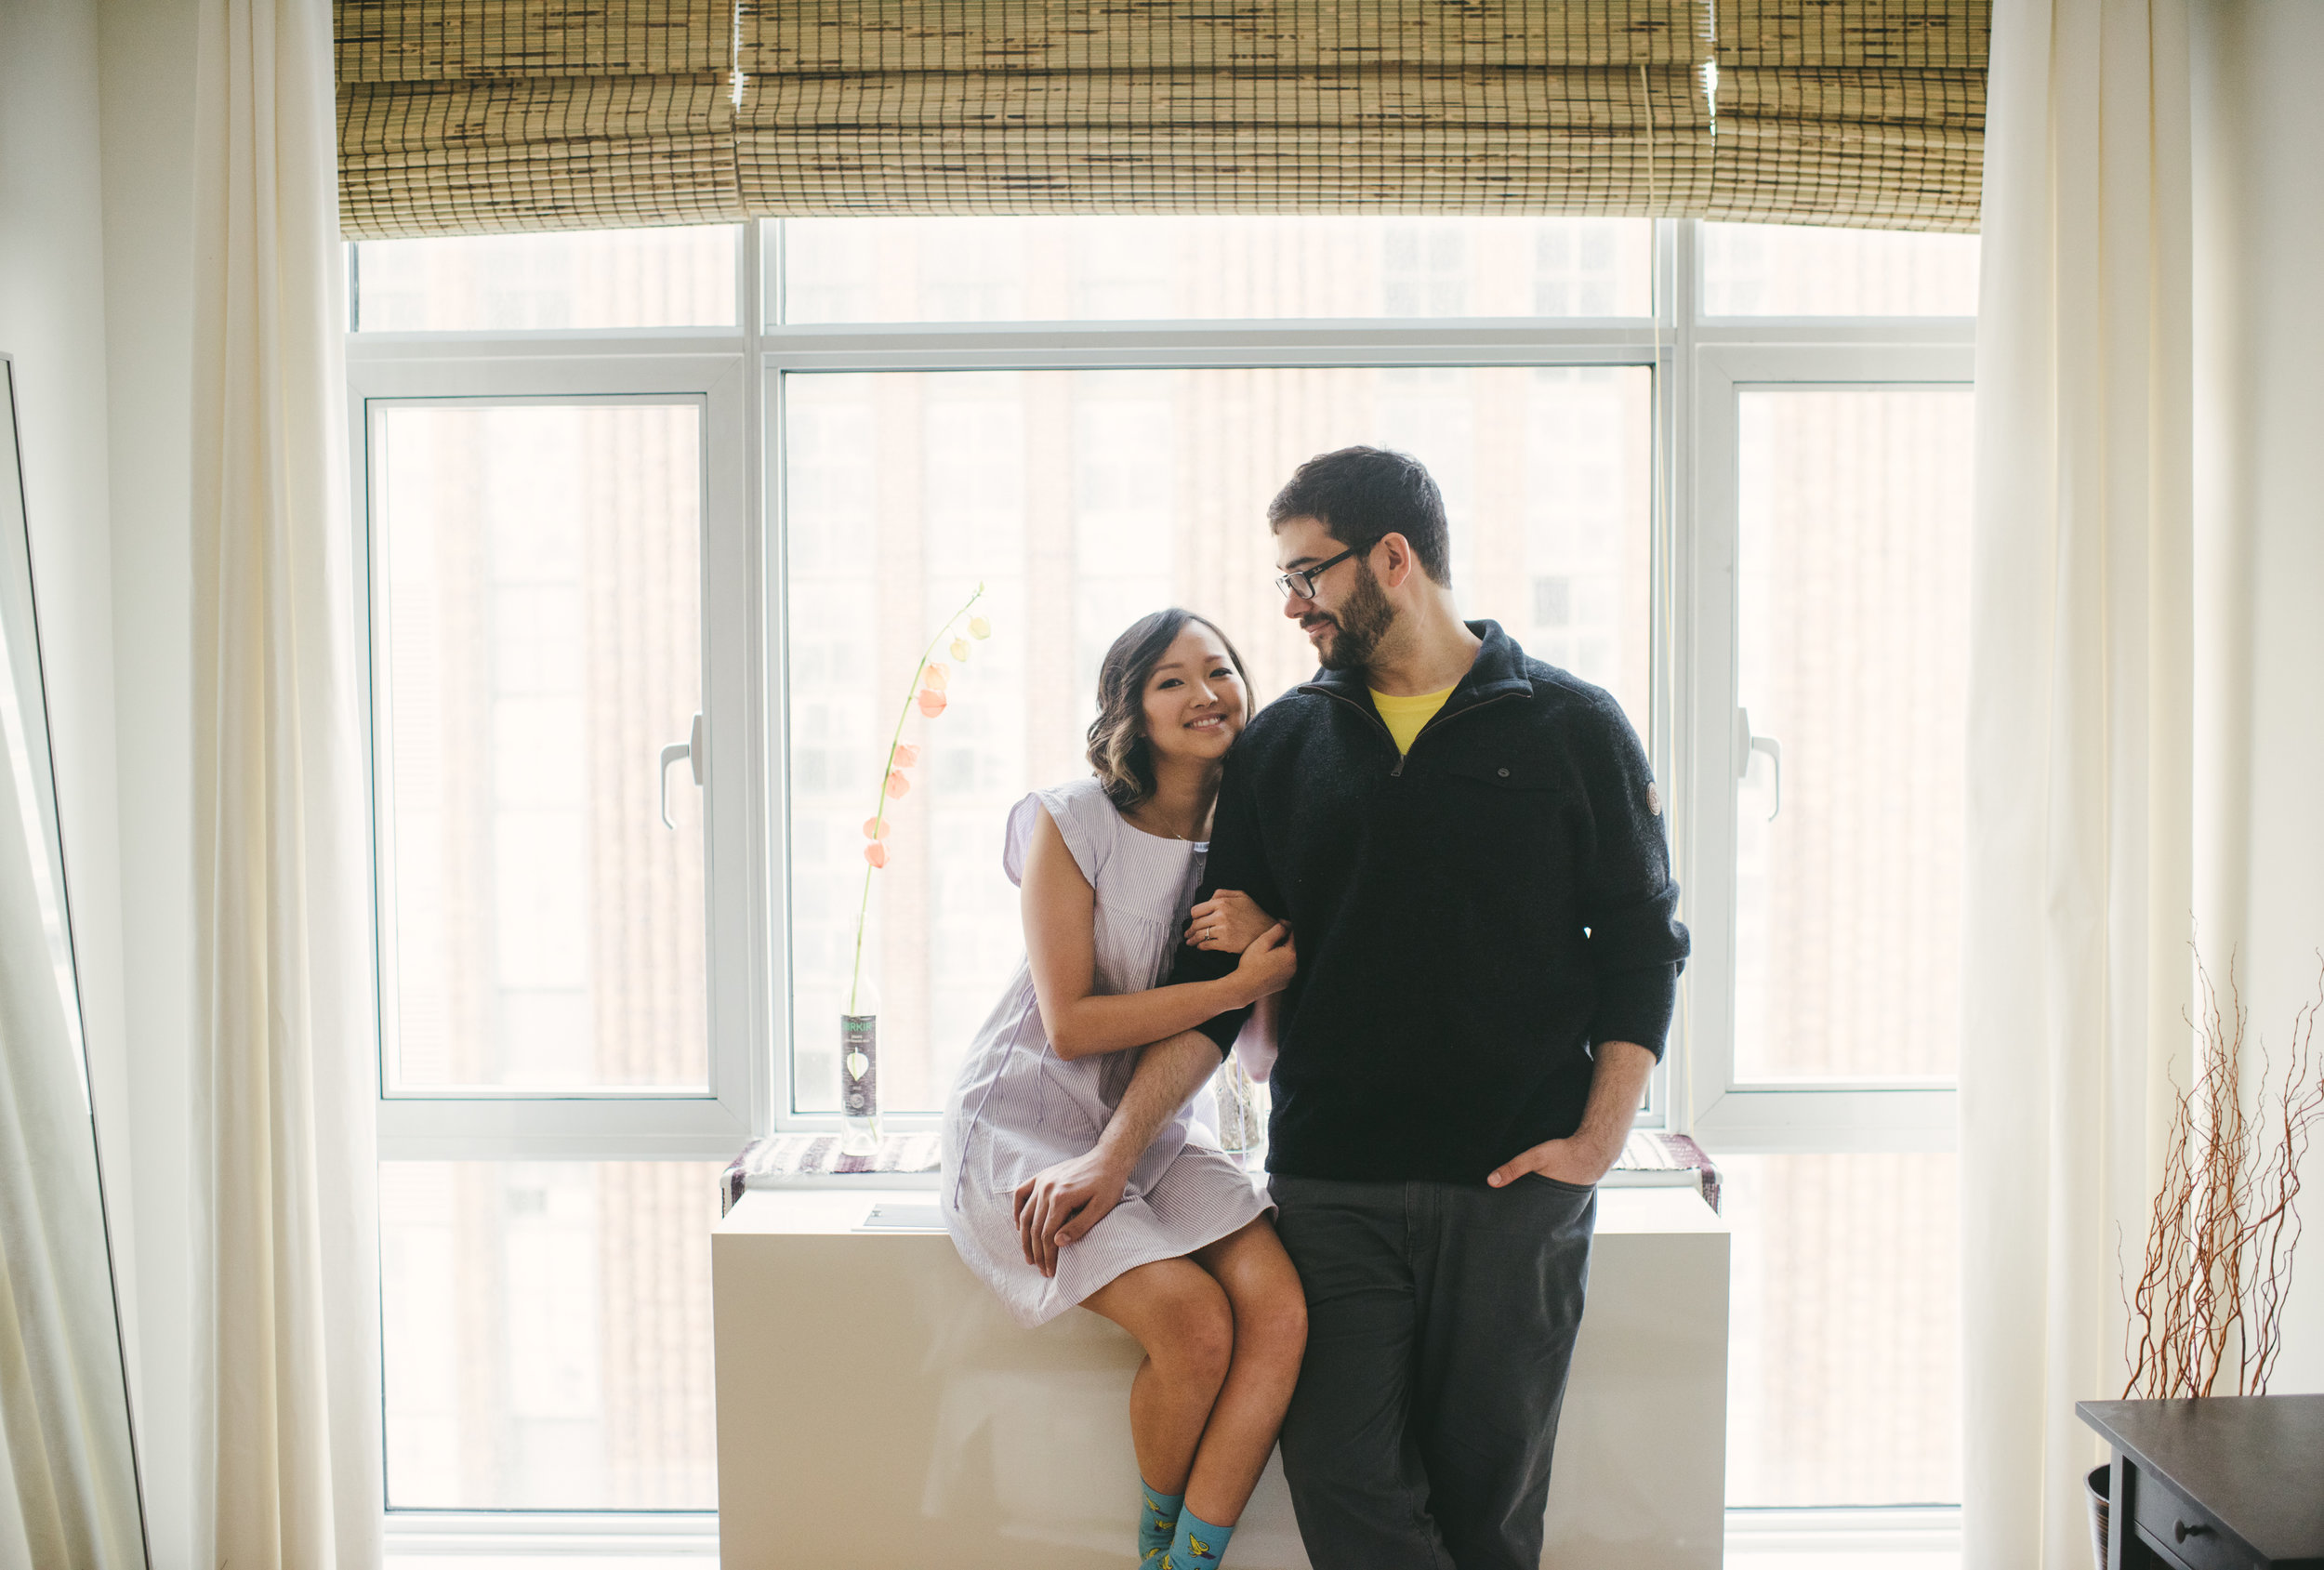 LILY & ANDREW - ENGAGED - TWOTWENTY by CHI-CHI AGBIM-55.jpg